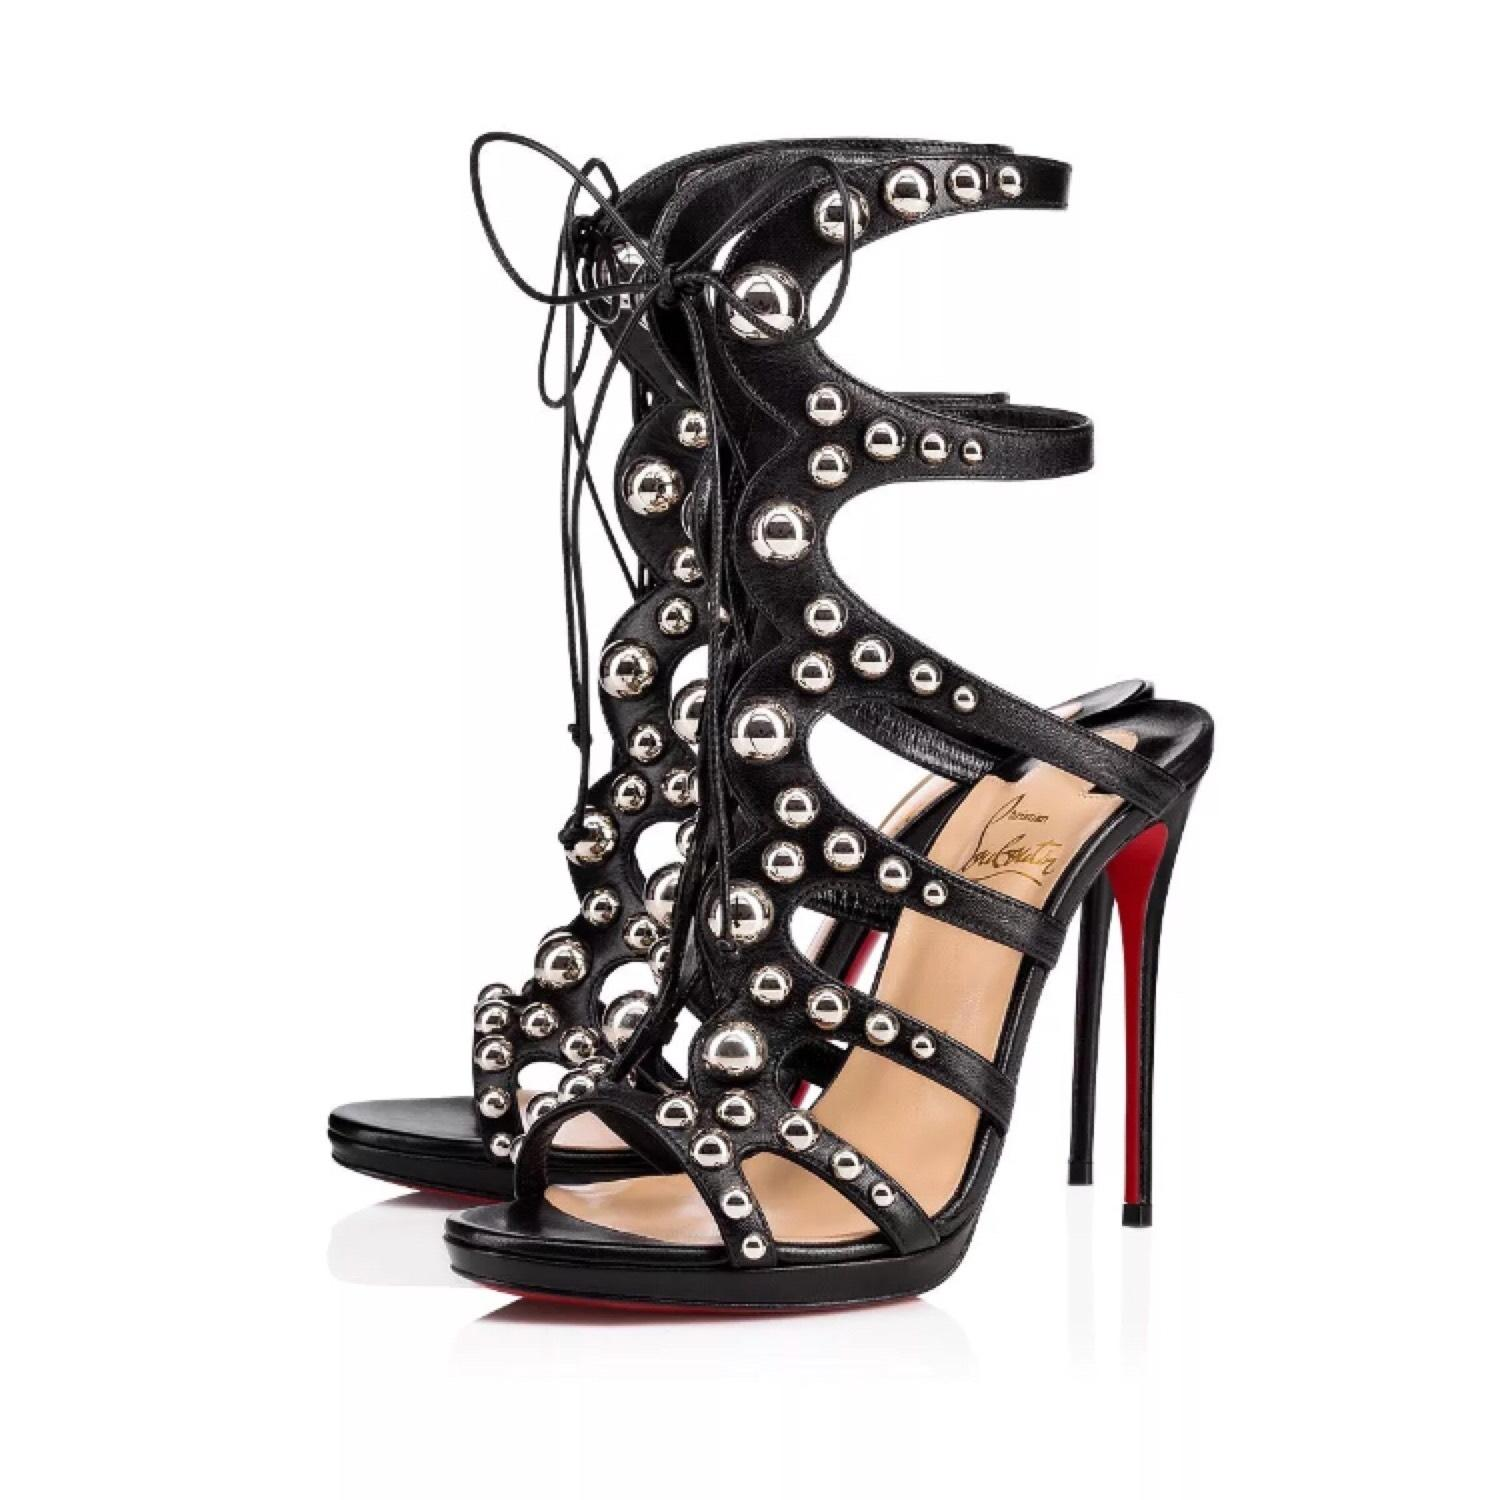 Christian Louboutin Black Amazoubille Leather Silver Stud Sandal Pumps Size EU 38 (Approx. US 8) Regular (M, B)